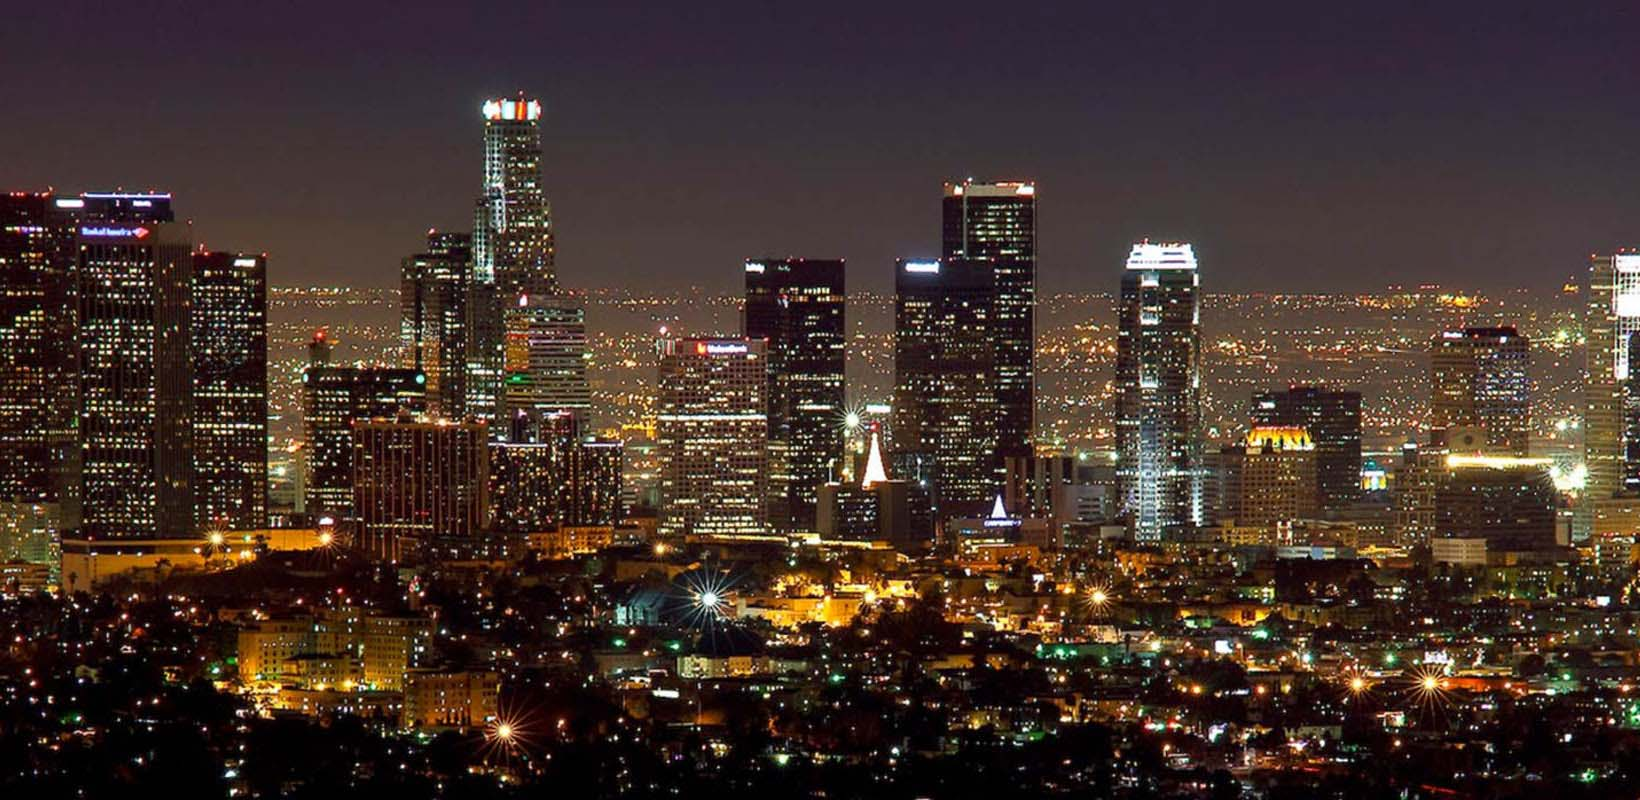 City tour of Los Angeles by night